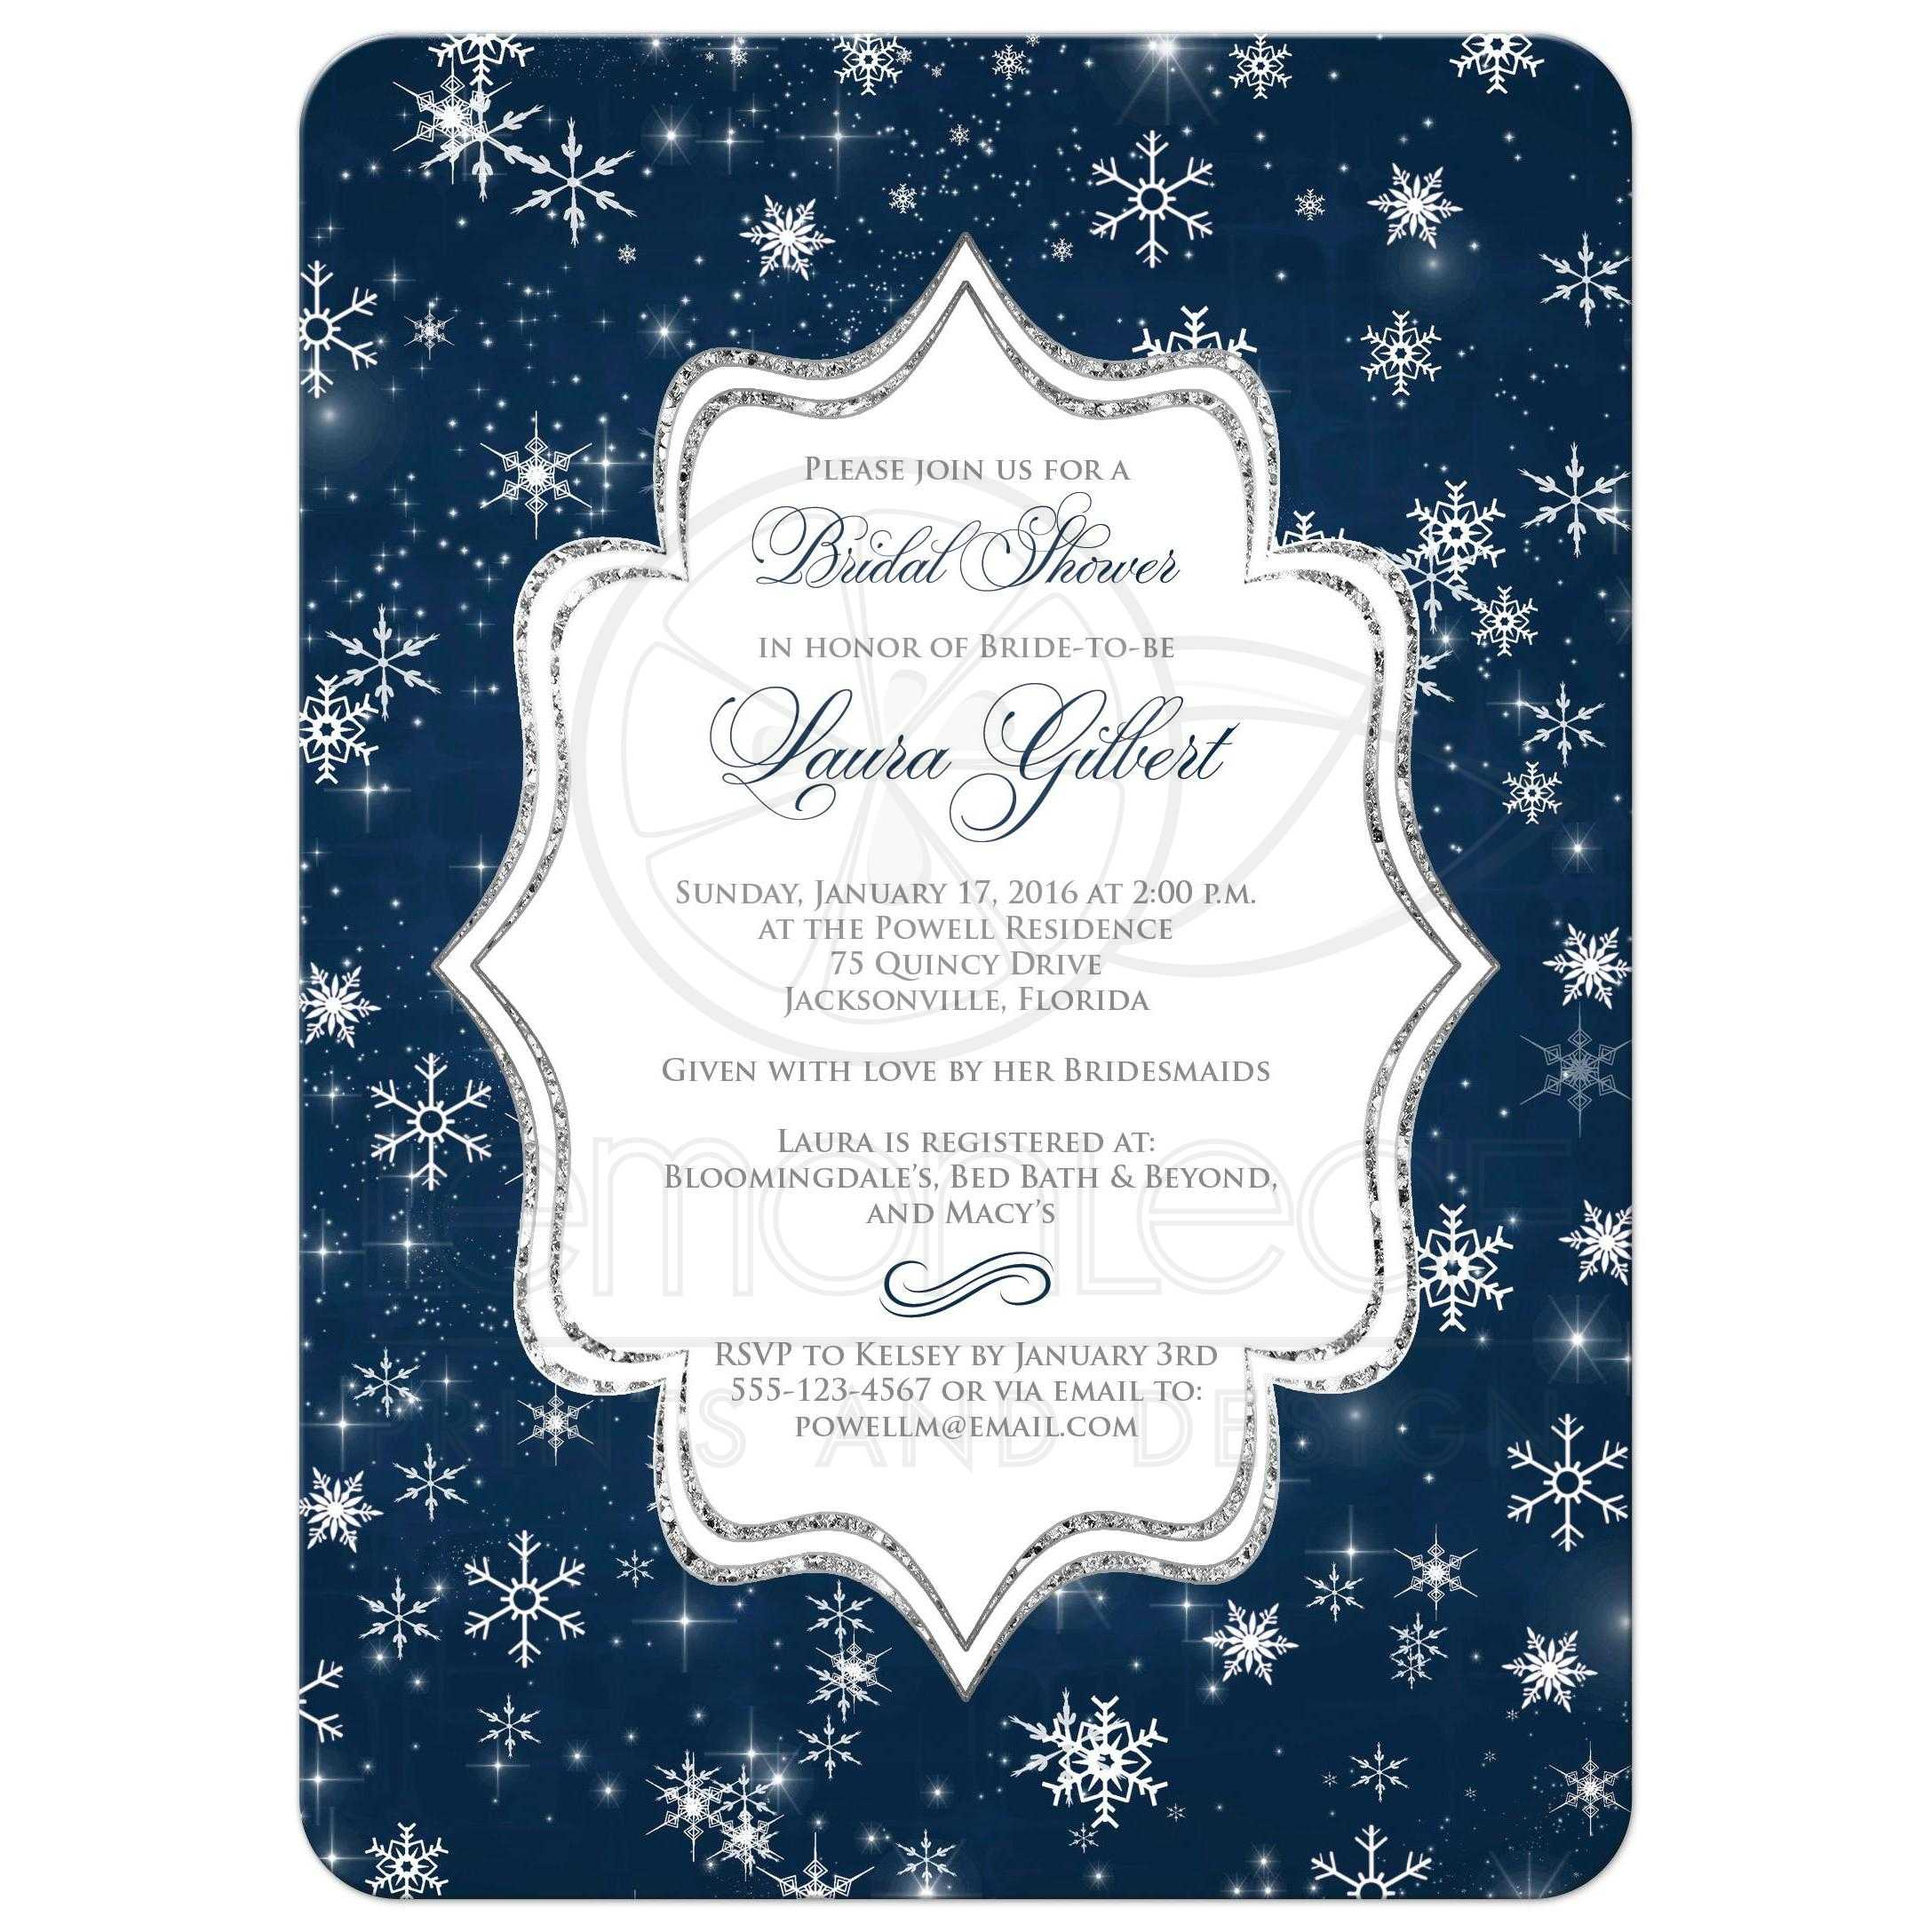 Winter bridal shower invitation a wintry night navy white great midnight blue white silver glitter and snowflakes wedding shower bridal shower filmwisefo